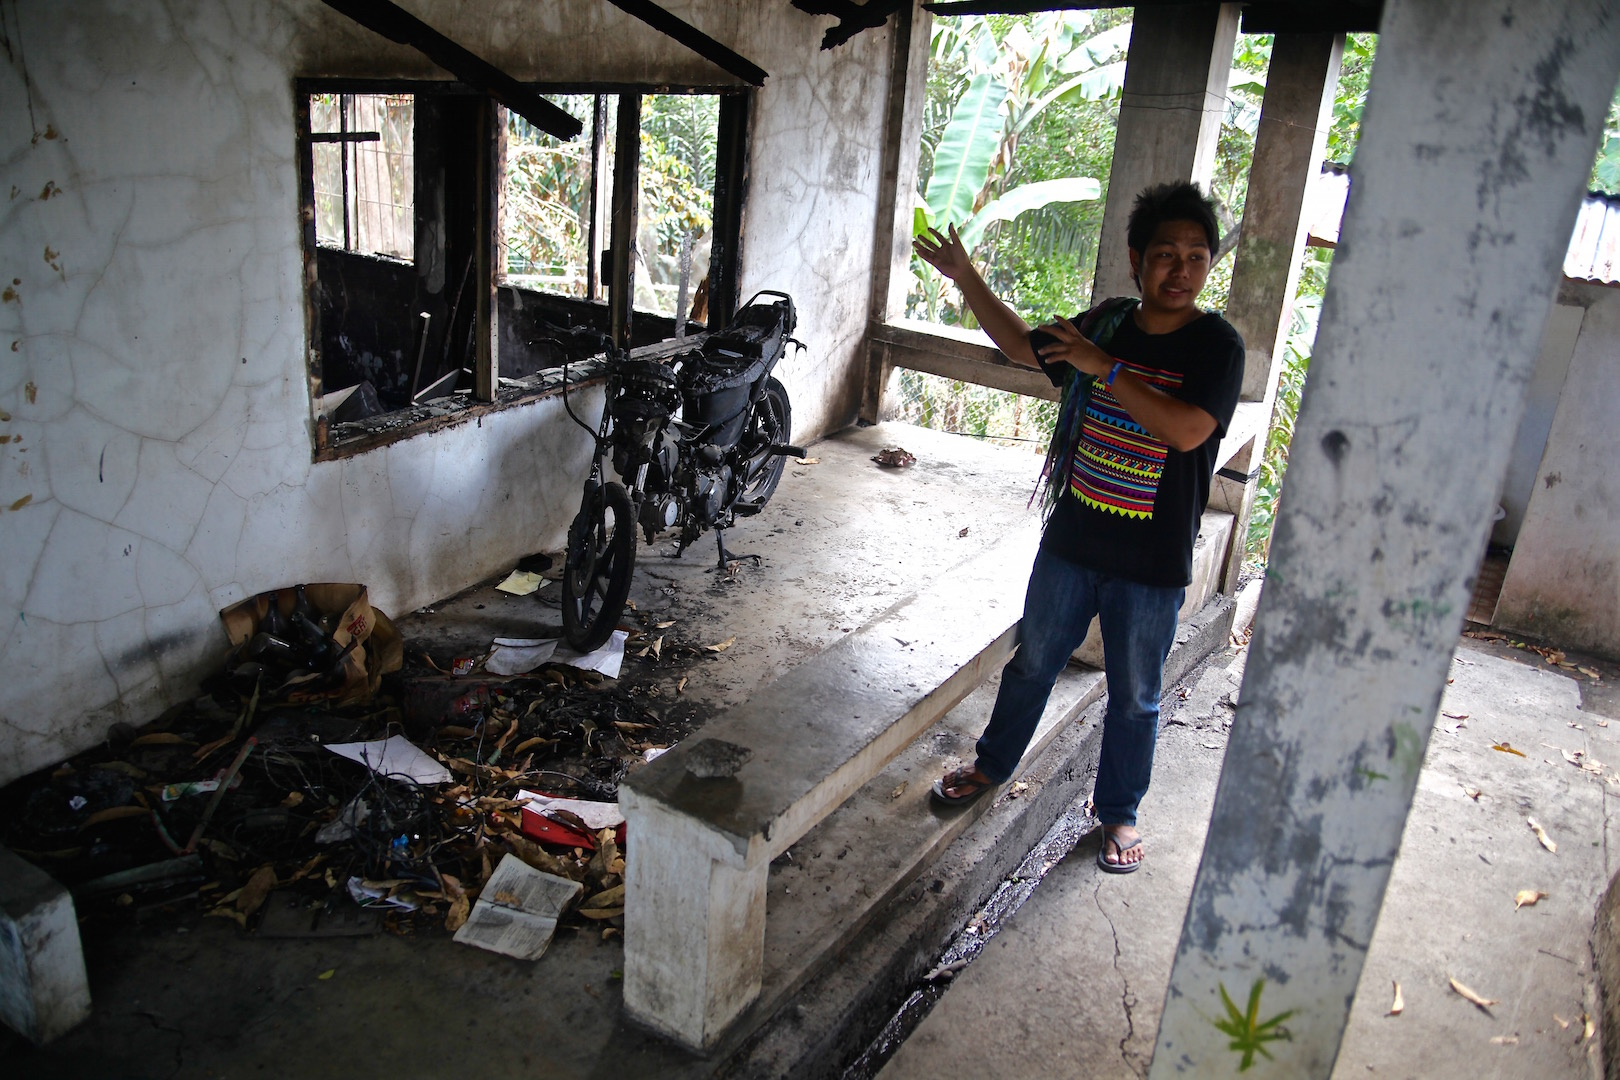 Rius Valle shows a firebombed building at the church sheltering displaced indigenous people in Davao City